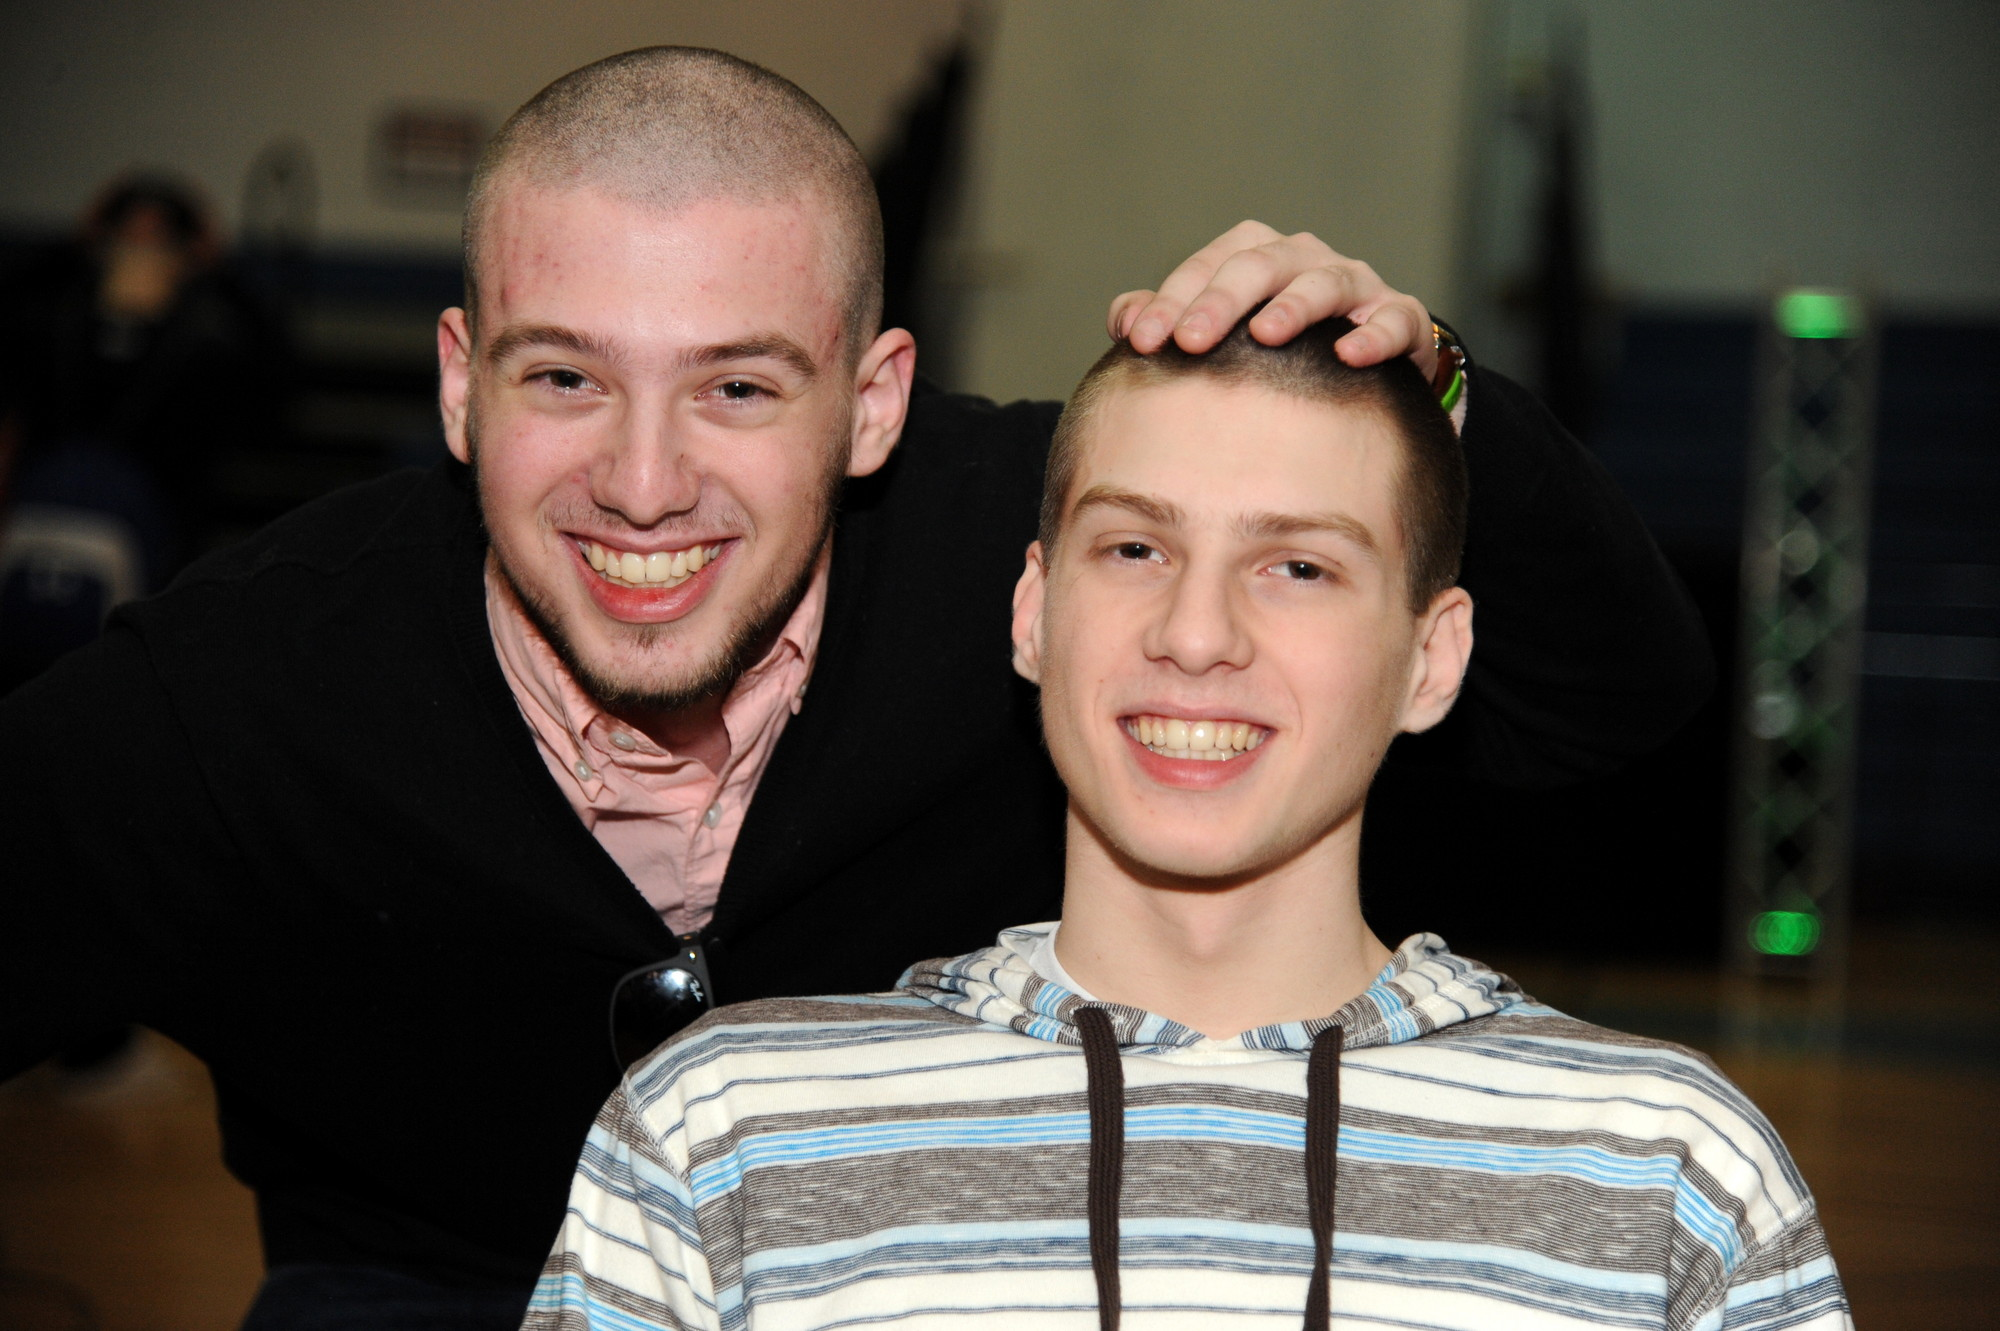 Alec and Dean Brownworth shaved their heads in solidarity with children with cancer, which Dean recently beat.